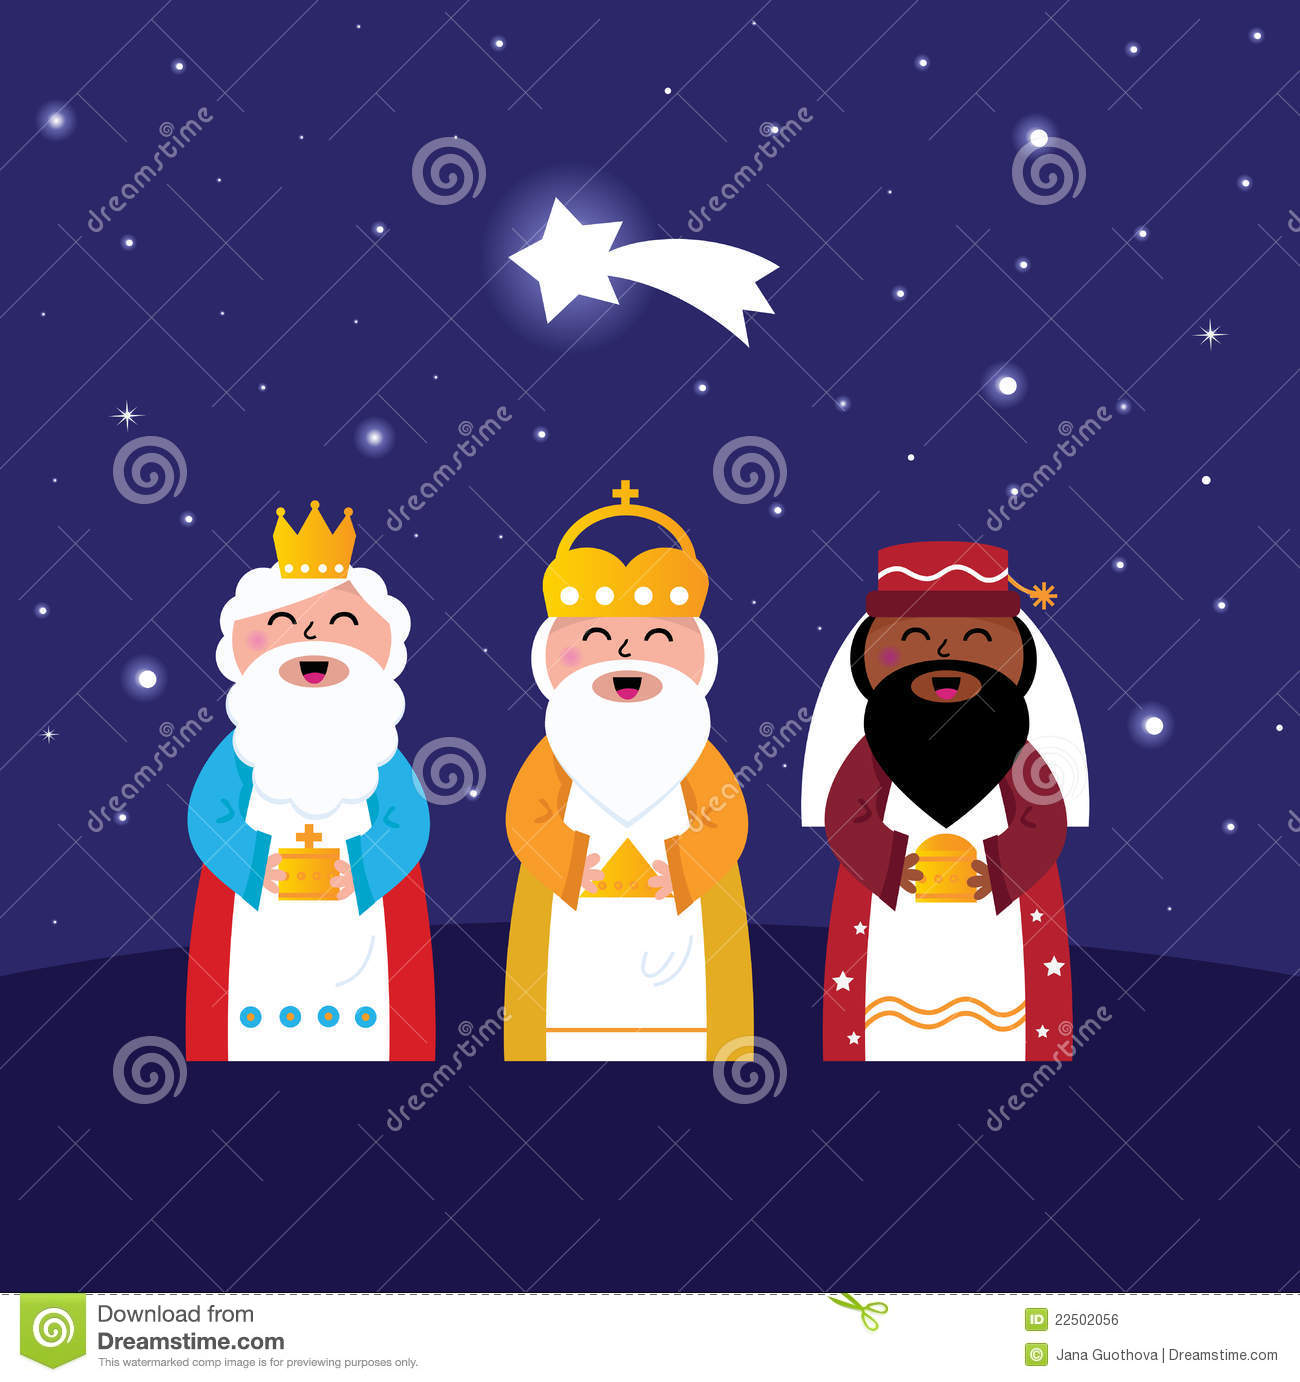 Three Wise Men Bringing Gifts To Christ Royalty Free Stock Image ...